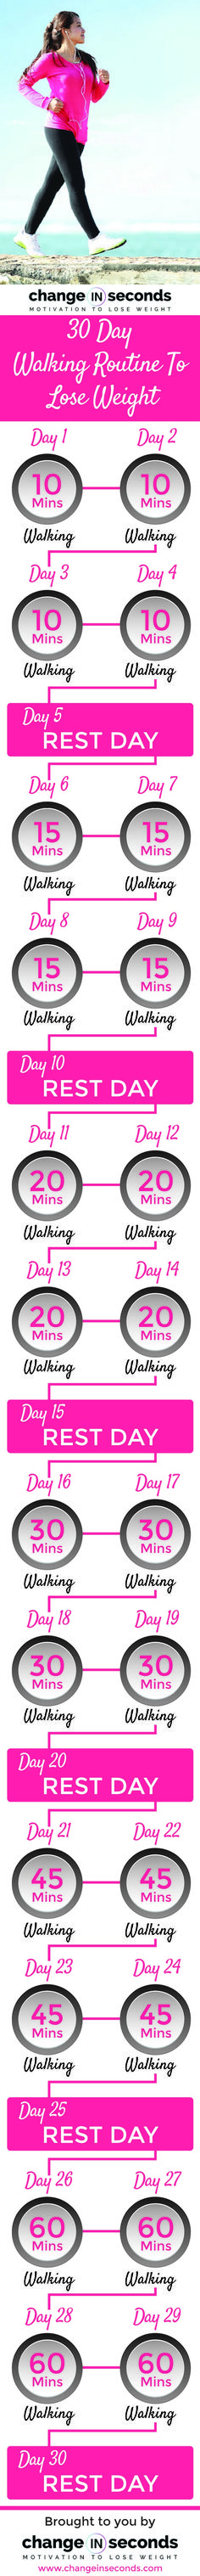 30 Day Walking Routine To Lose Weight